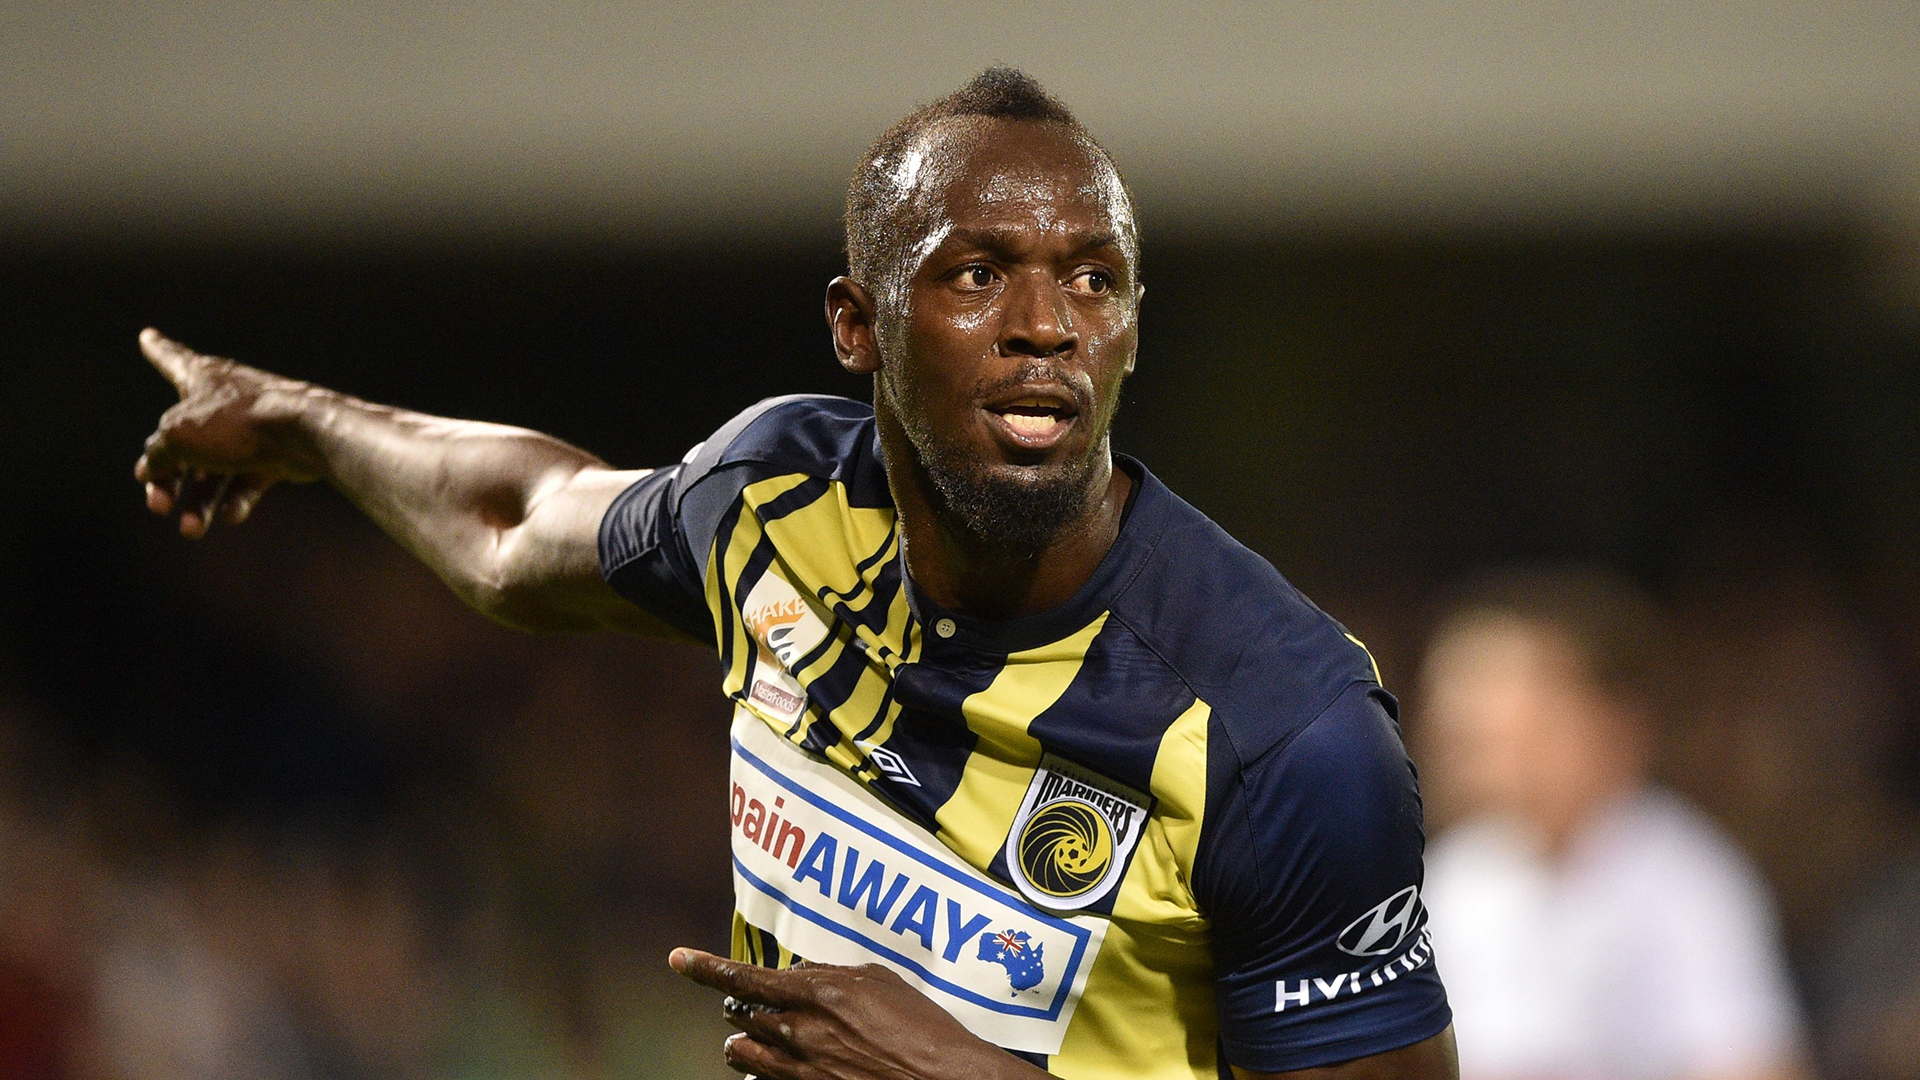 Usain Bolt ends Central Coast Mariners trial